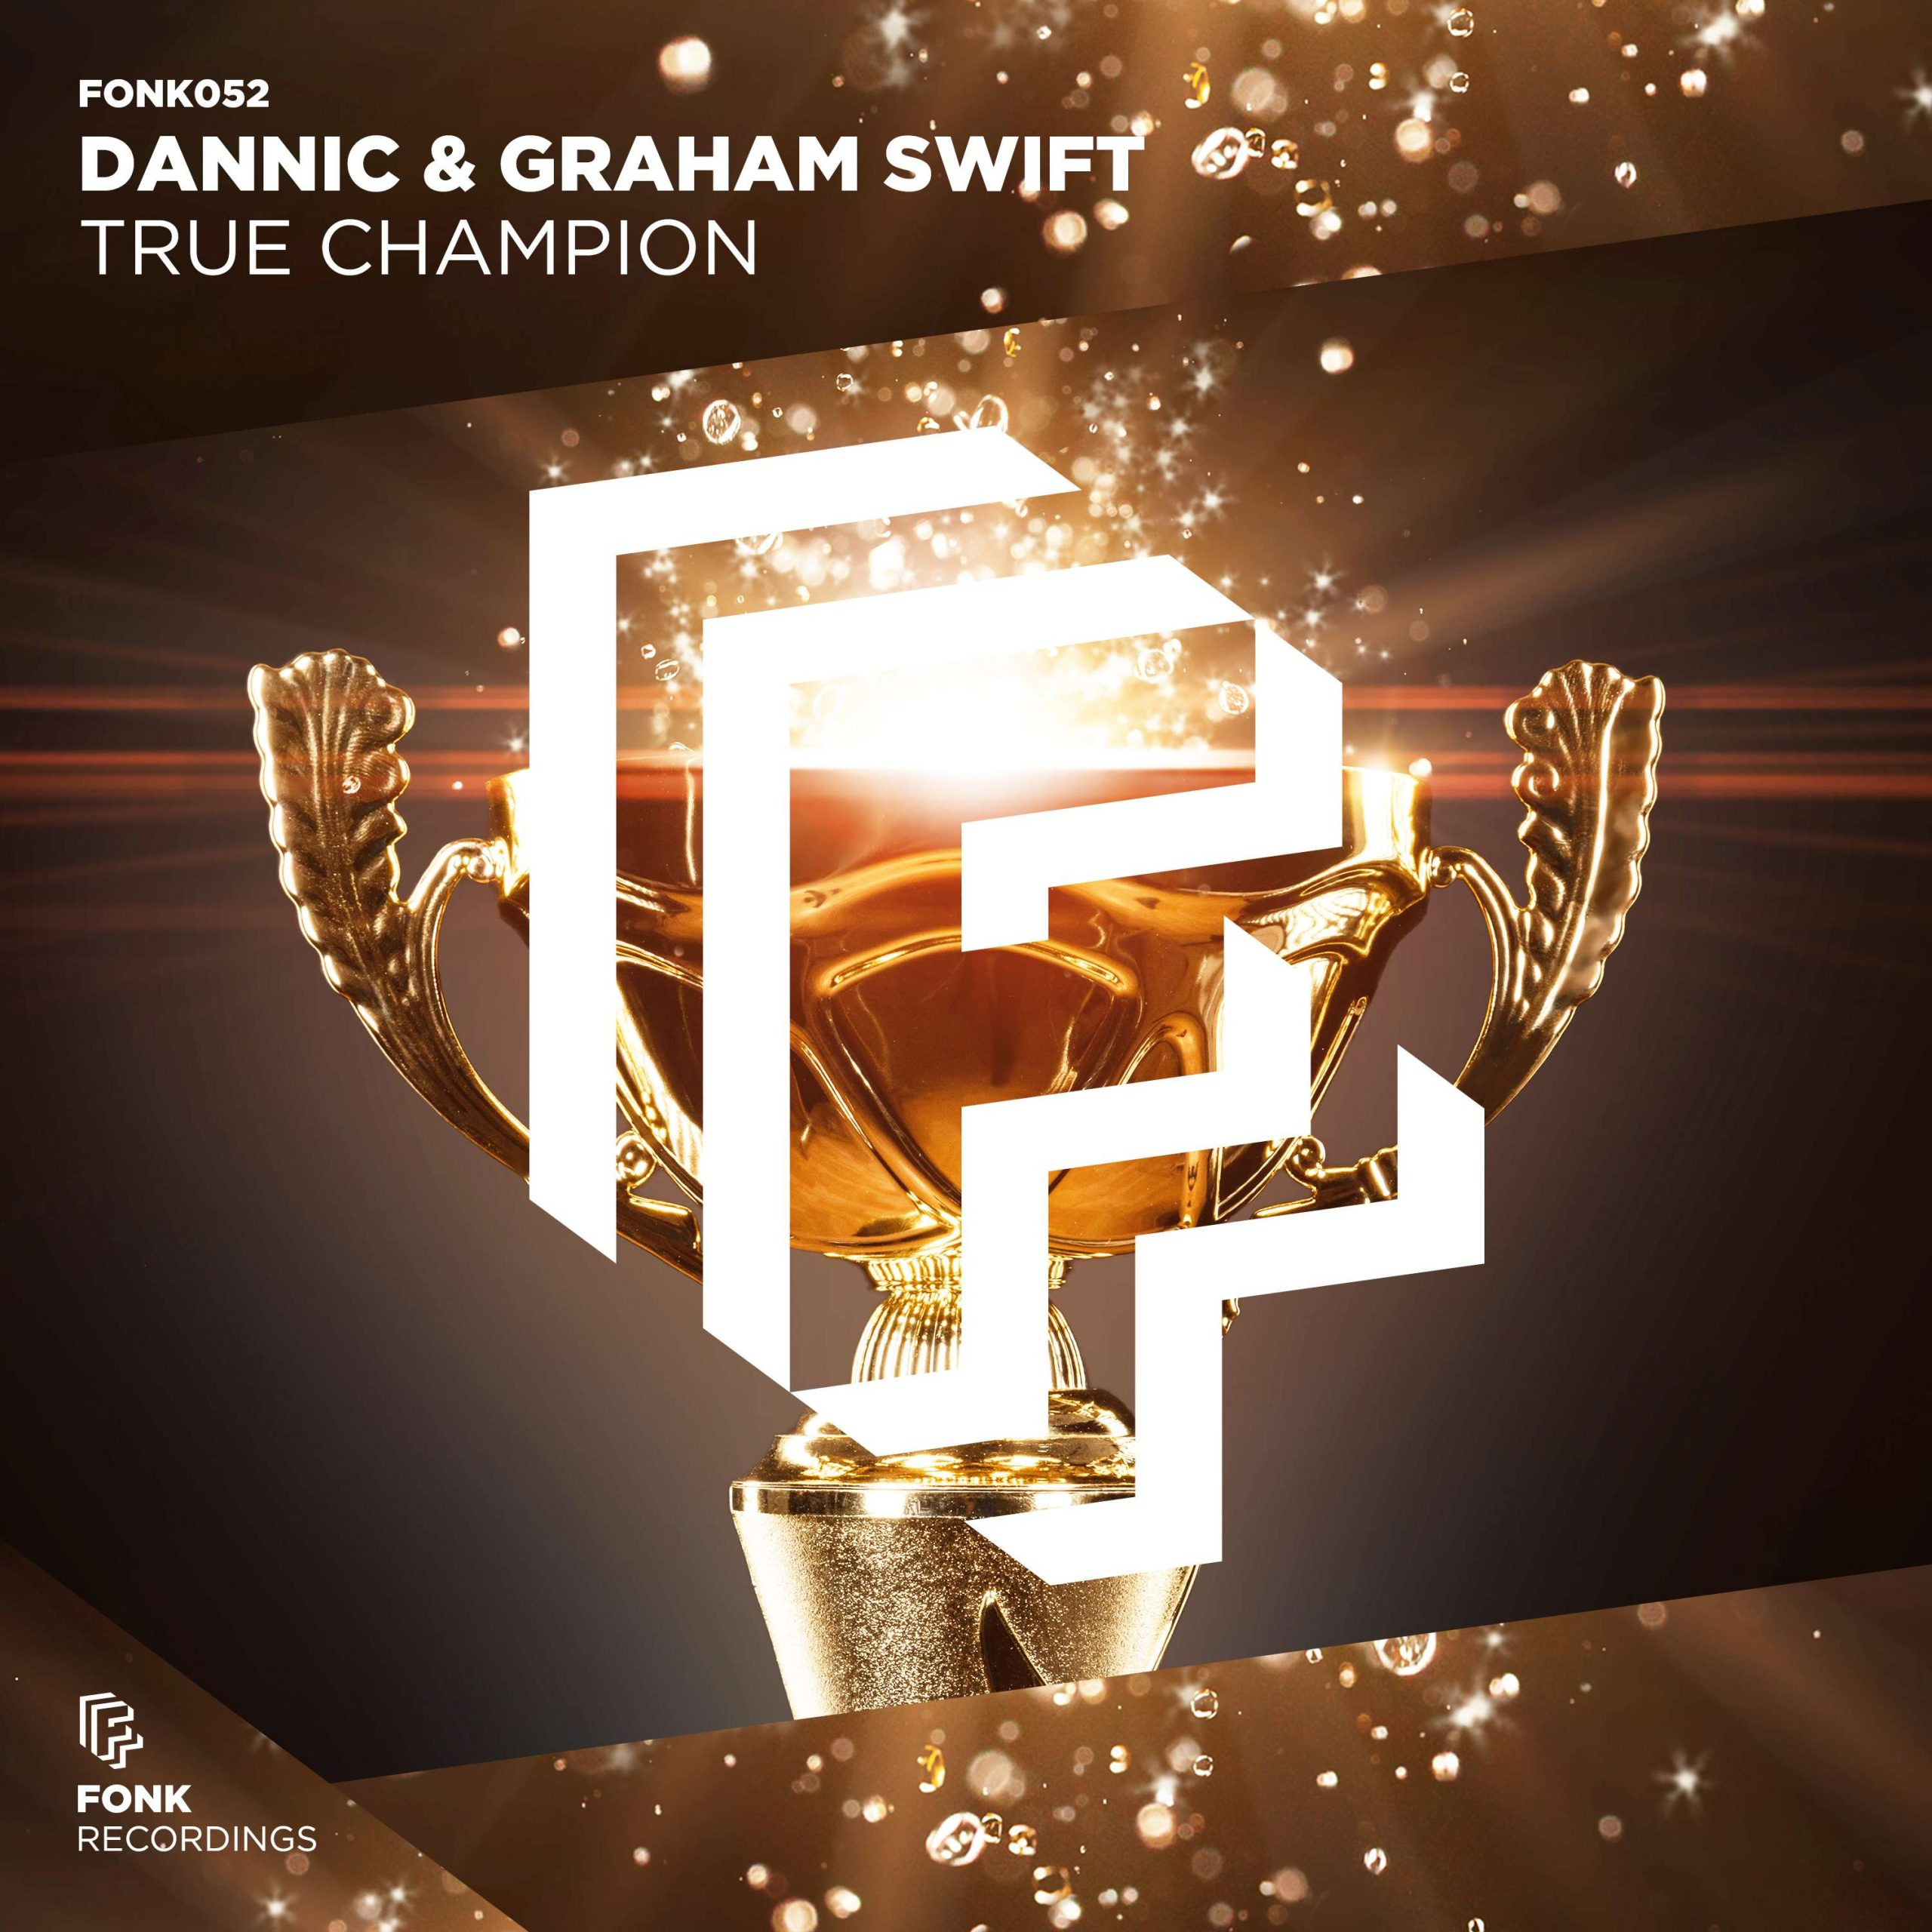 Dannic & Graham Swift - True Champion